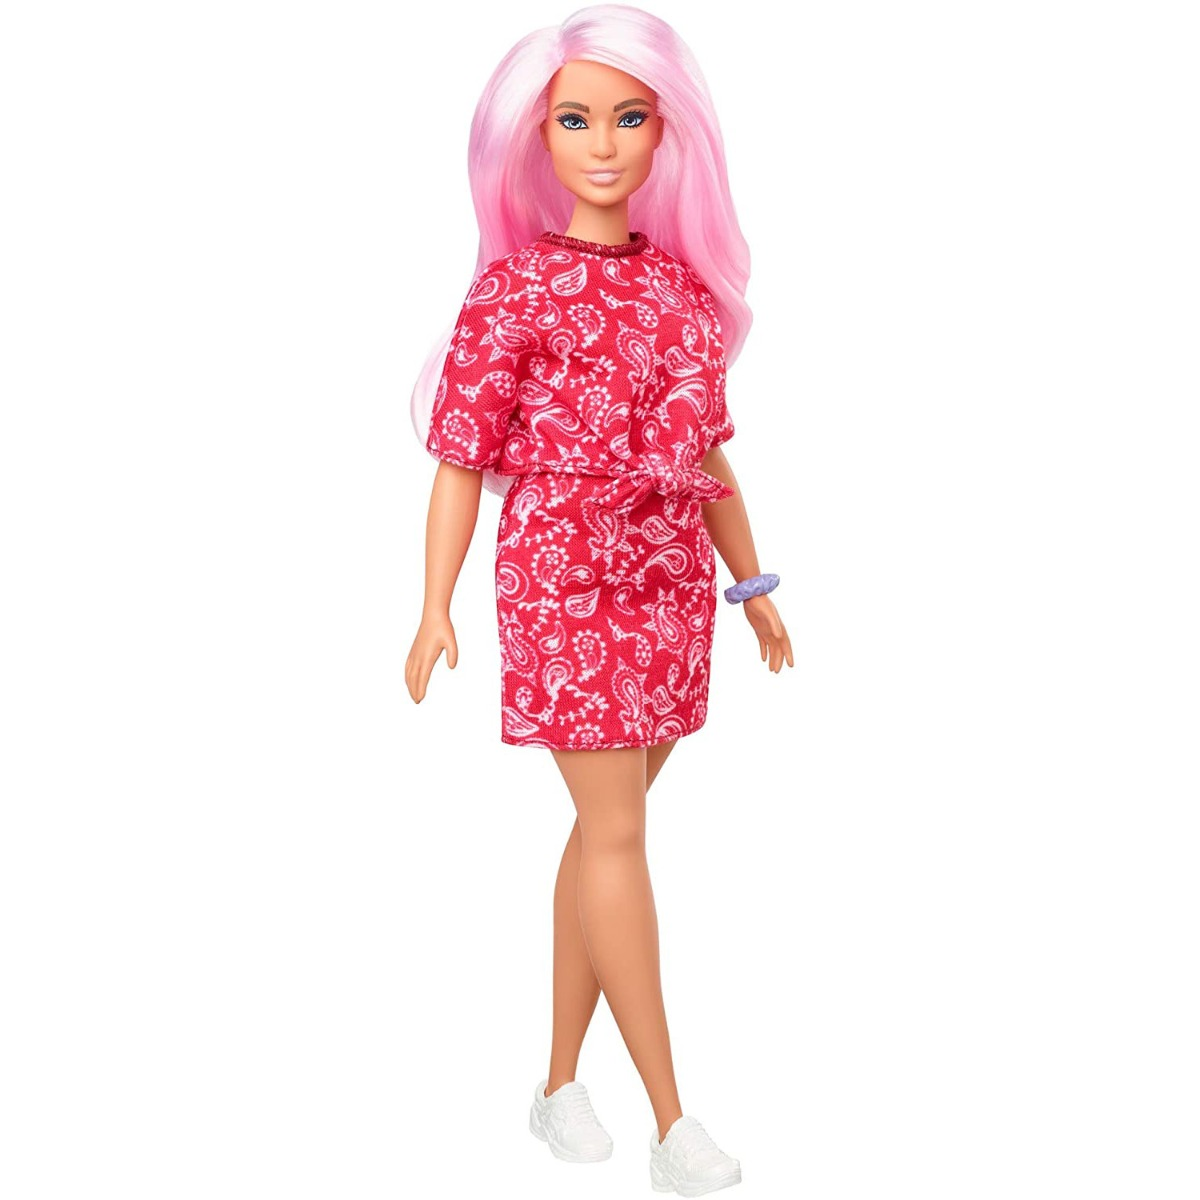 Papusa Barbie Fashionistas, 151, GHW65